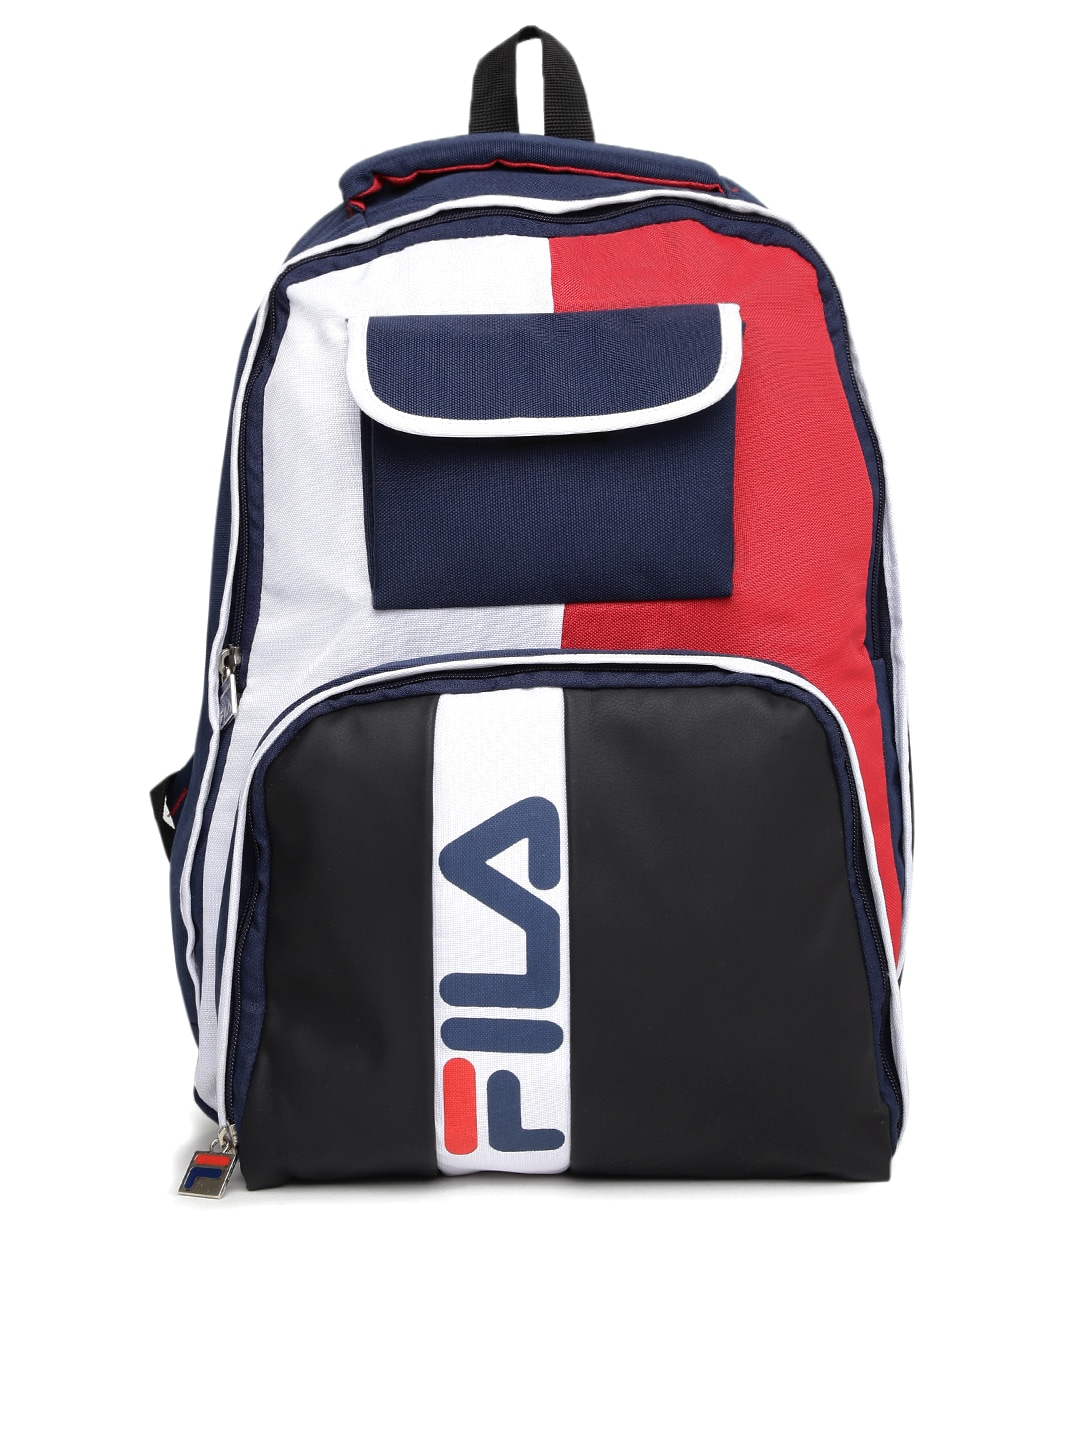 4ee3155b90b7 Fila 13001241 Unisex Navy Blue And Black Uranus Backpack- Price in India